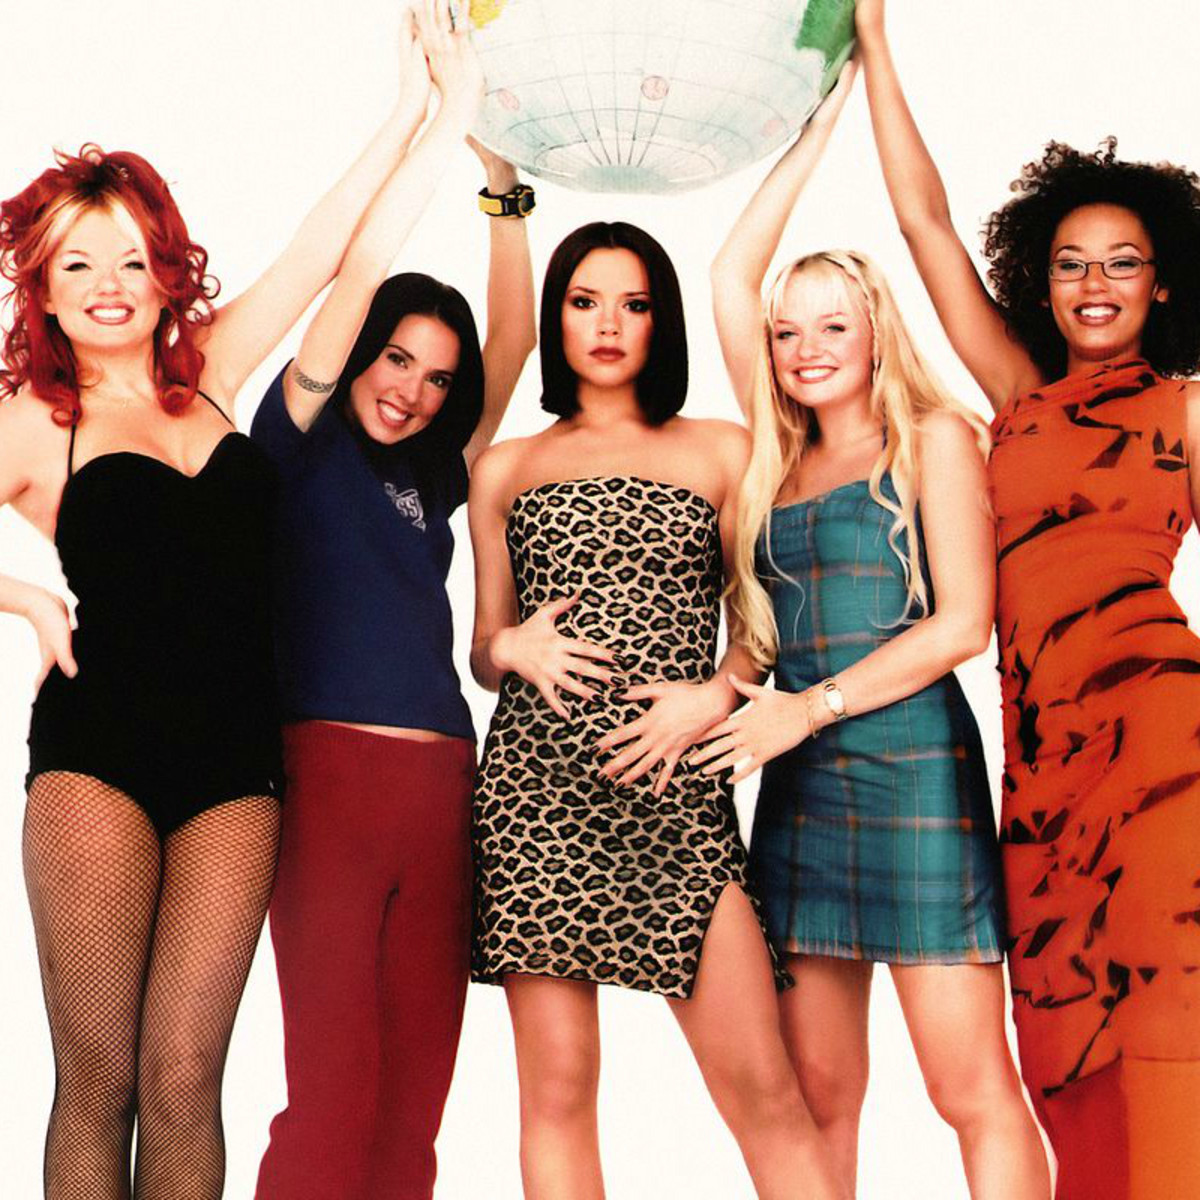 Spice Girls promo pic